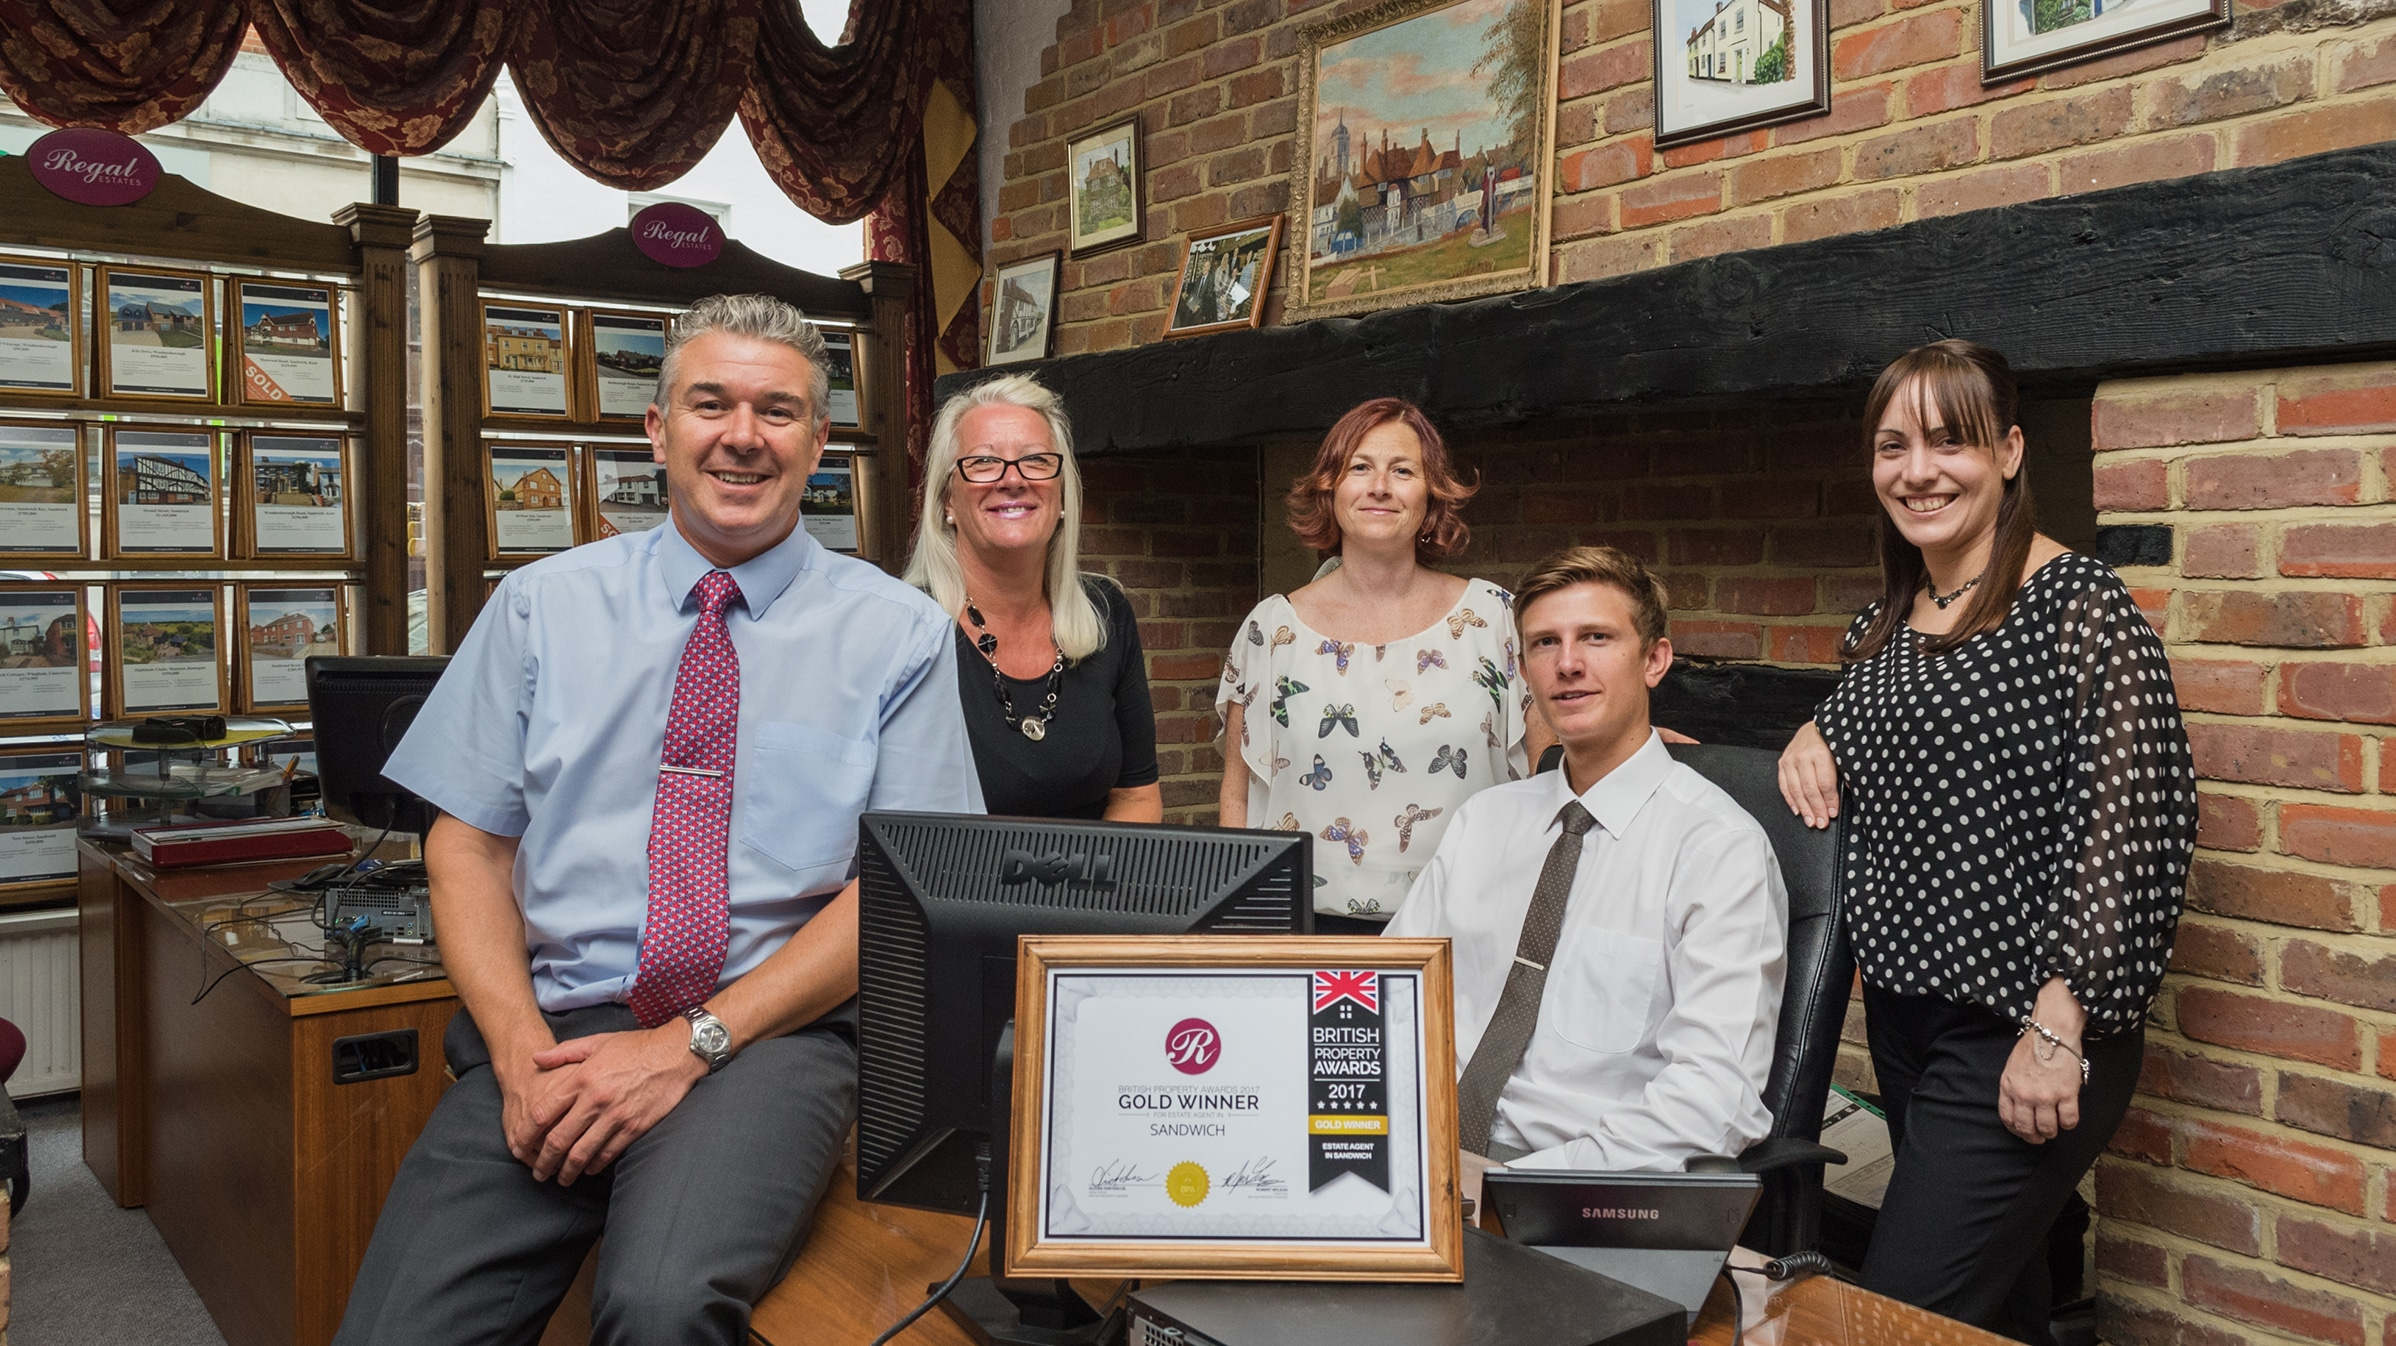 Our Sandwich Office wins 'Gold' at the British Property Awards